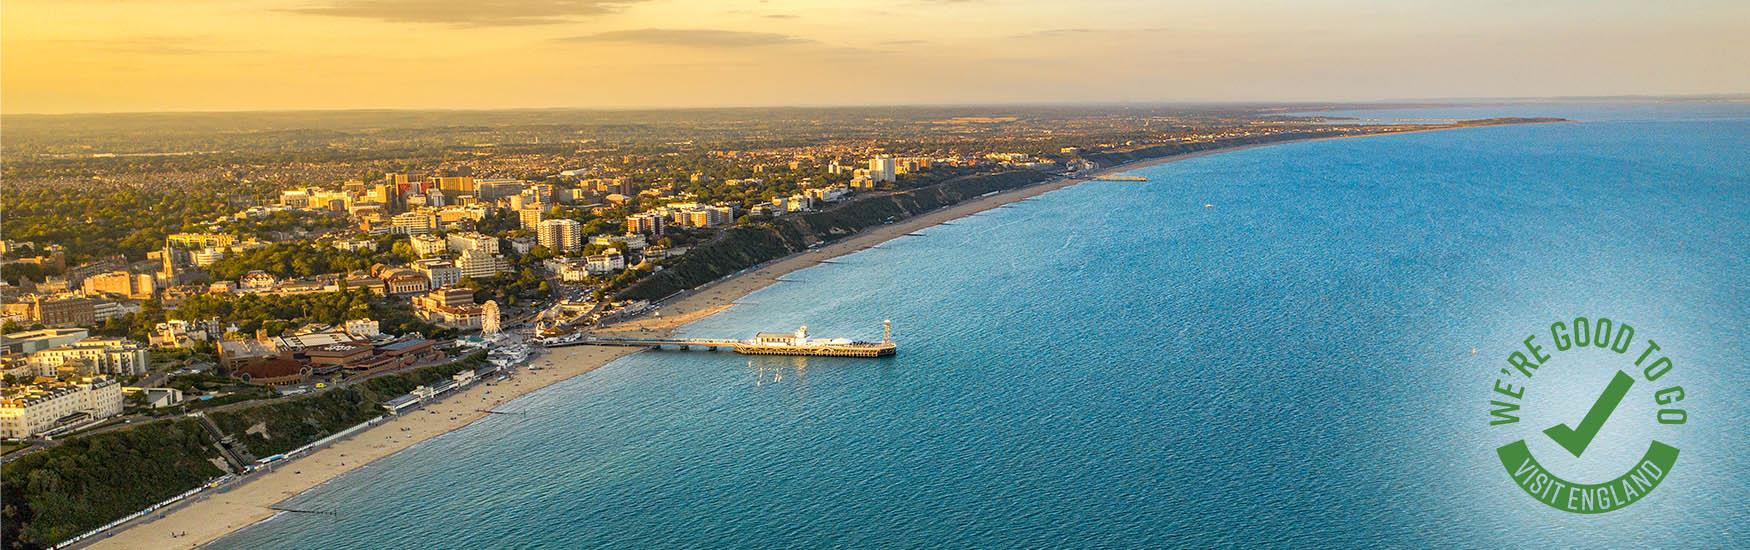 Sunset image of Bournemouth Bay beach and clifftops with green we're good to go logo in the corner